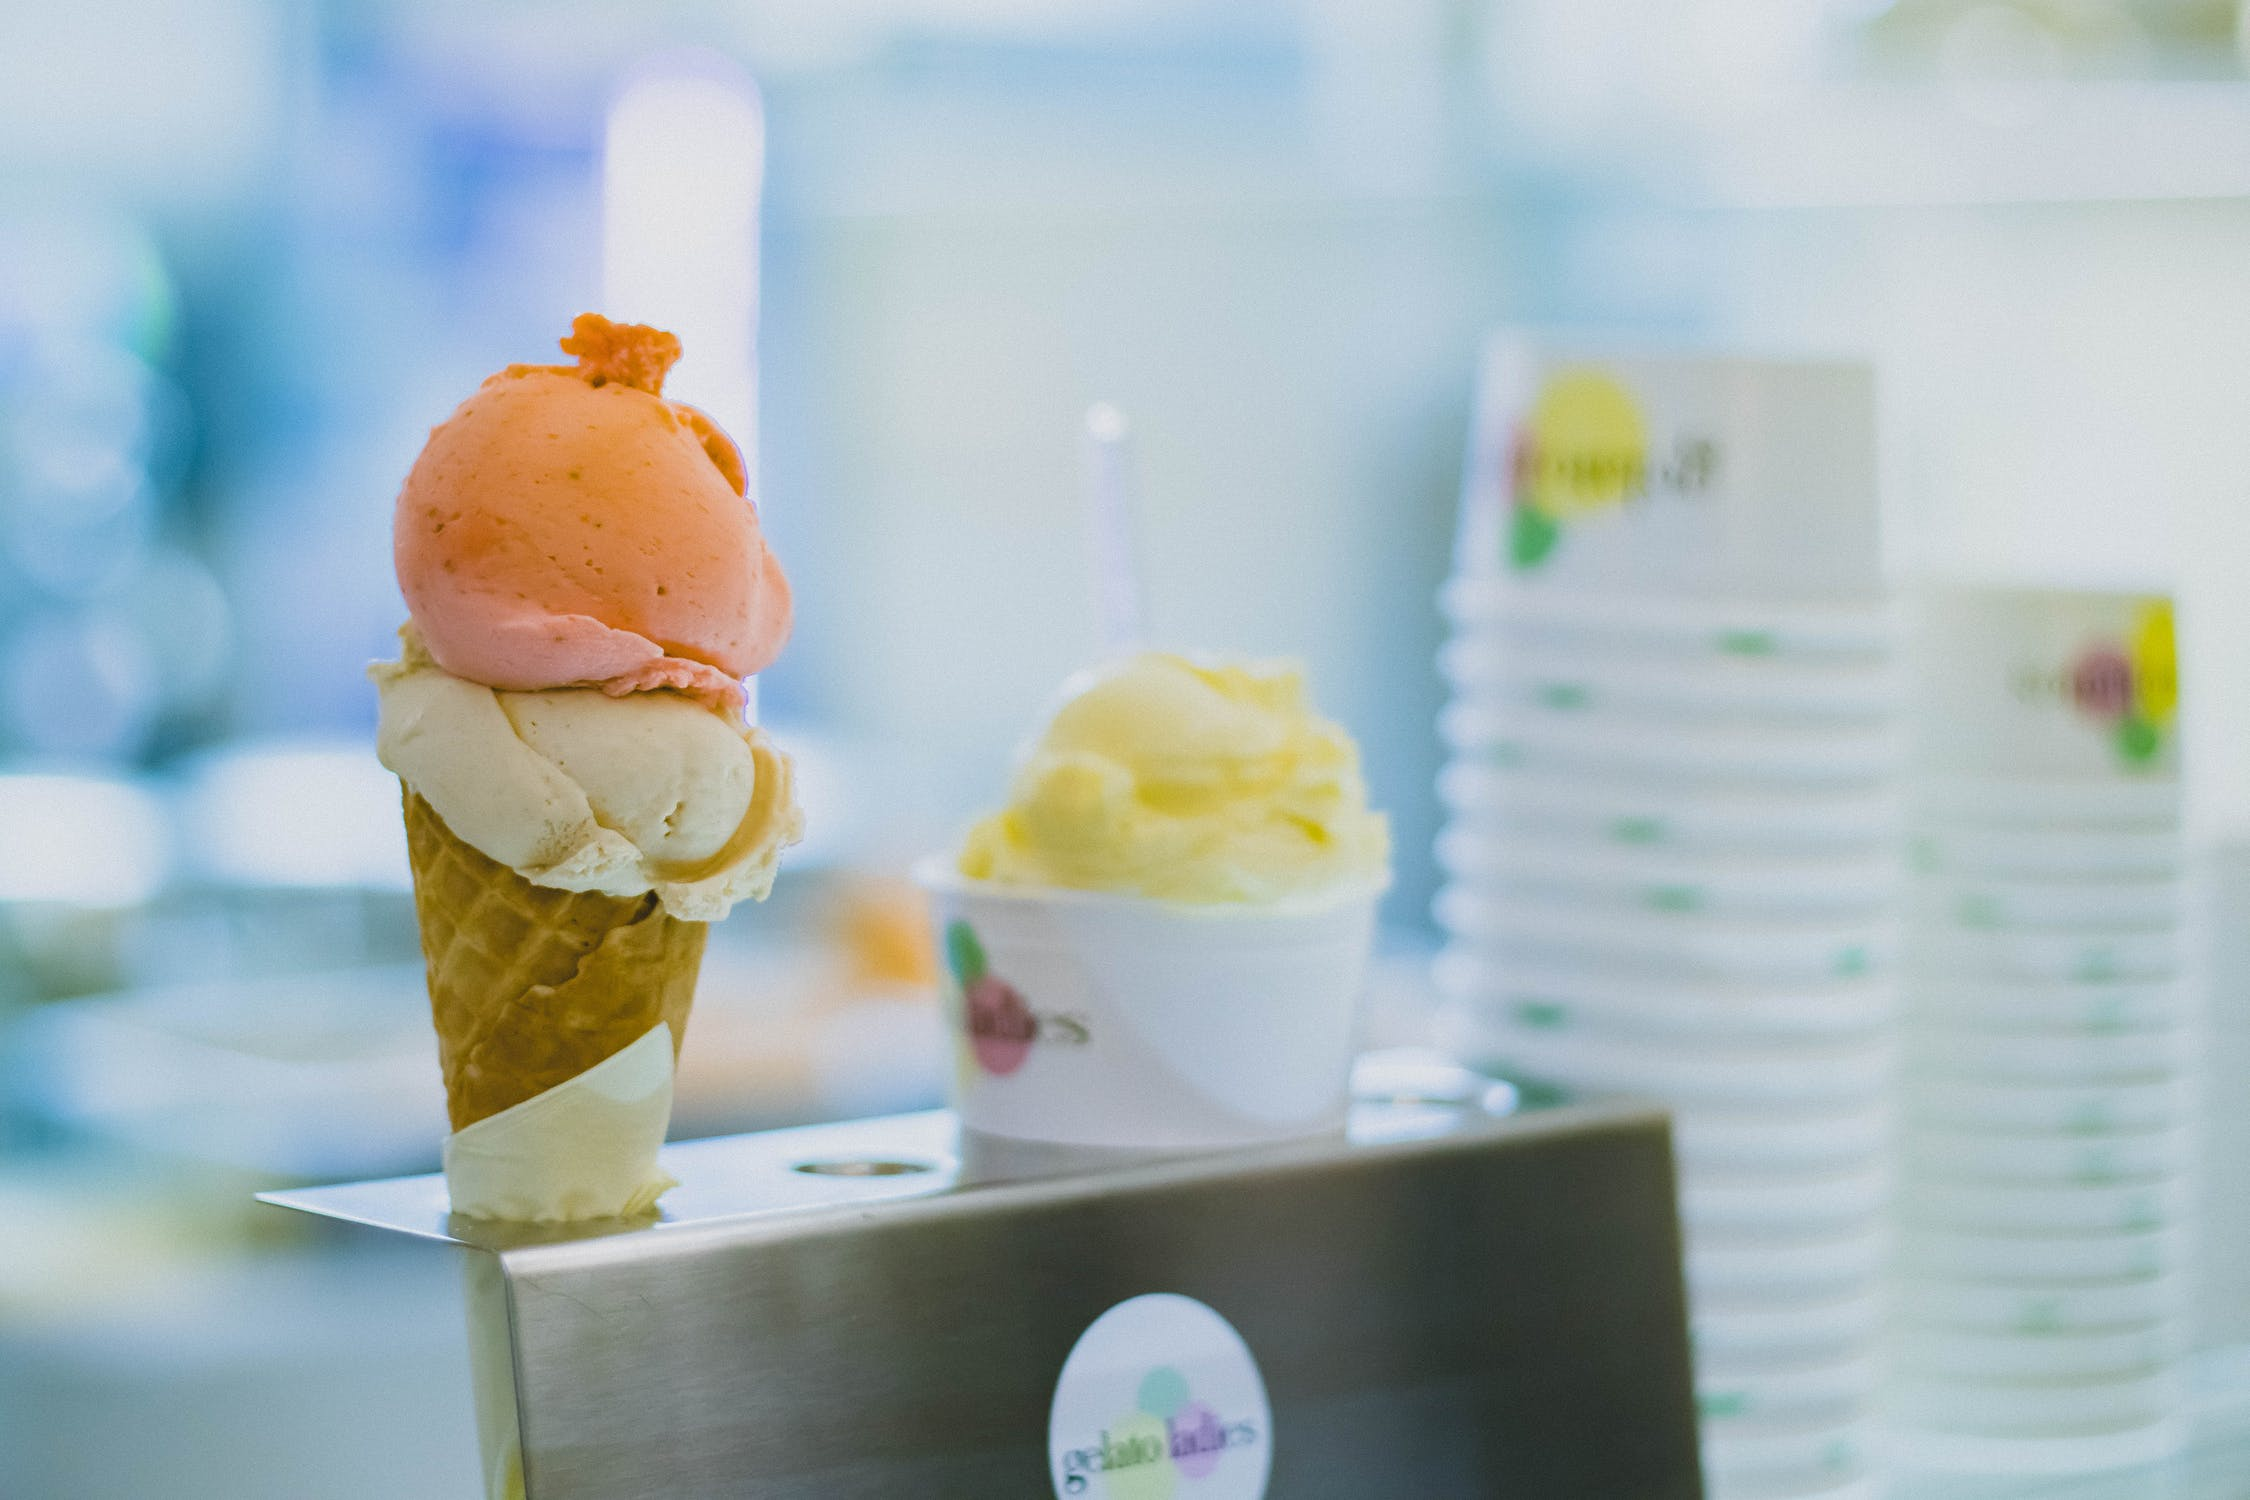 Gelatissimo Franchise for Sale